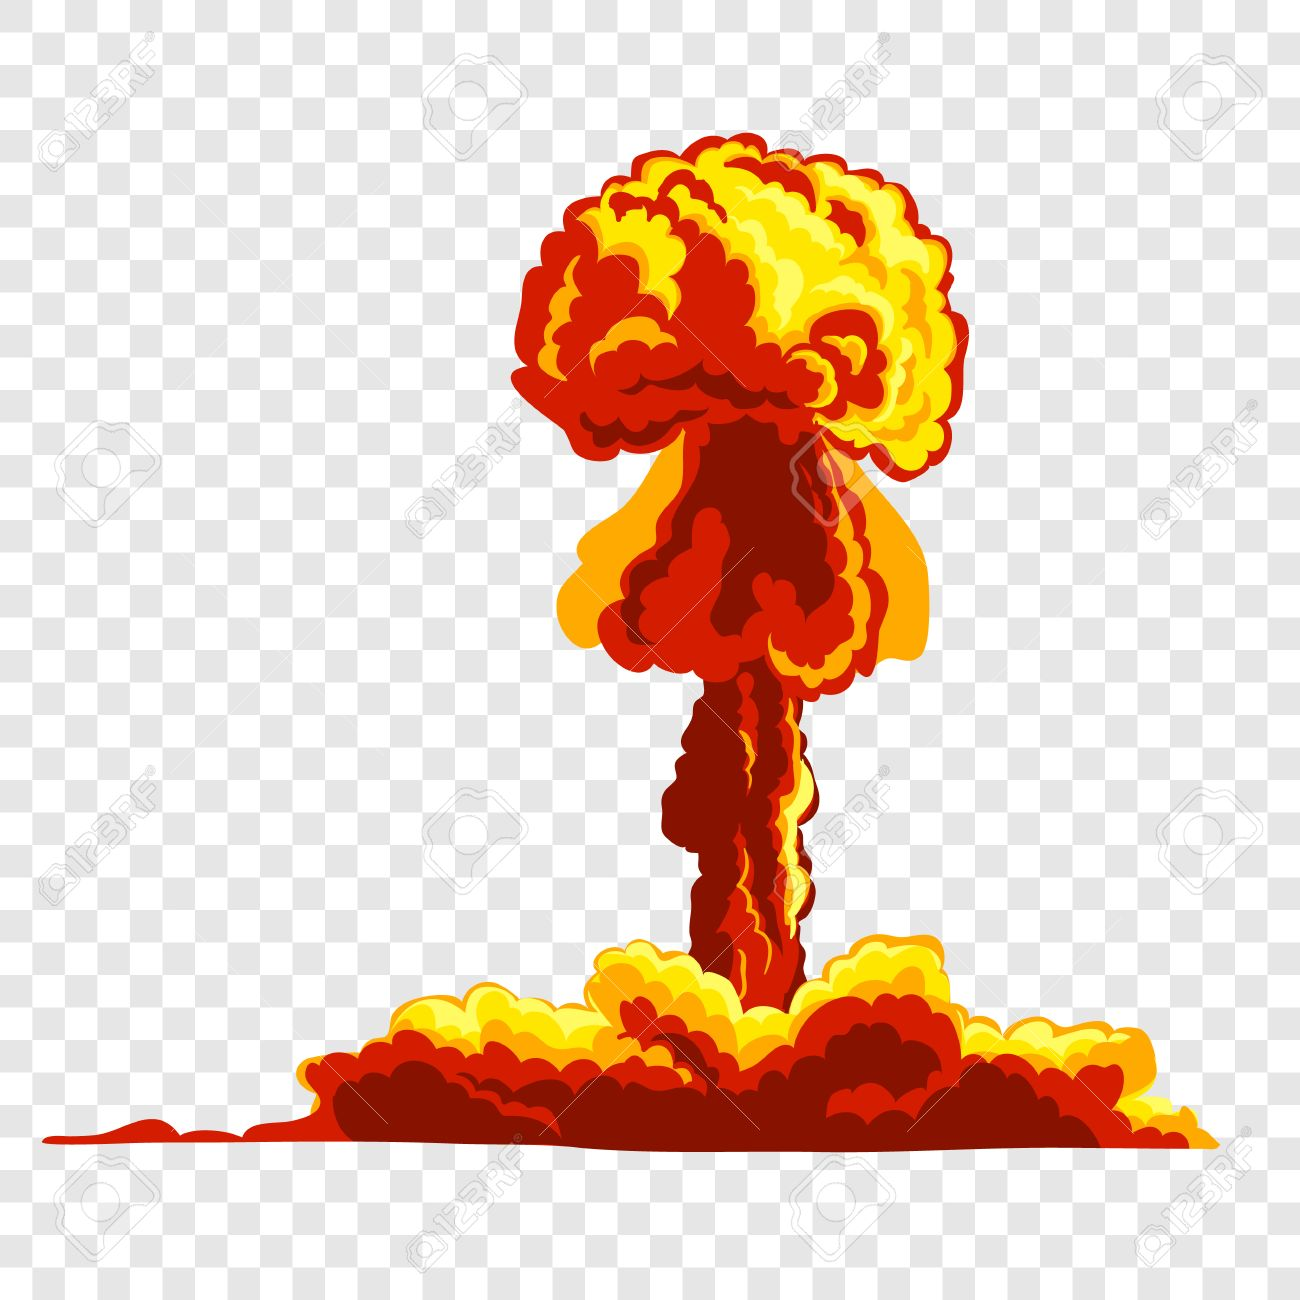 Mushroom cloud. Orange and red illustration on transparent background Stock  Vector - 51730523